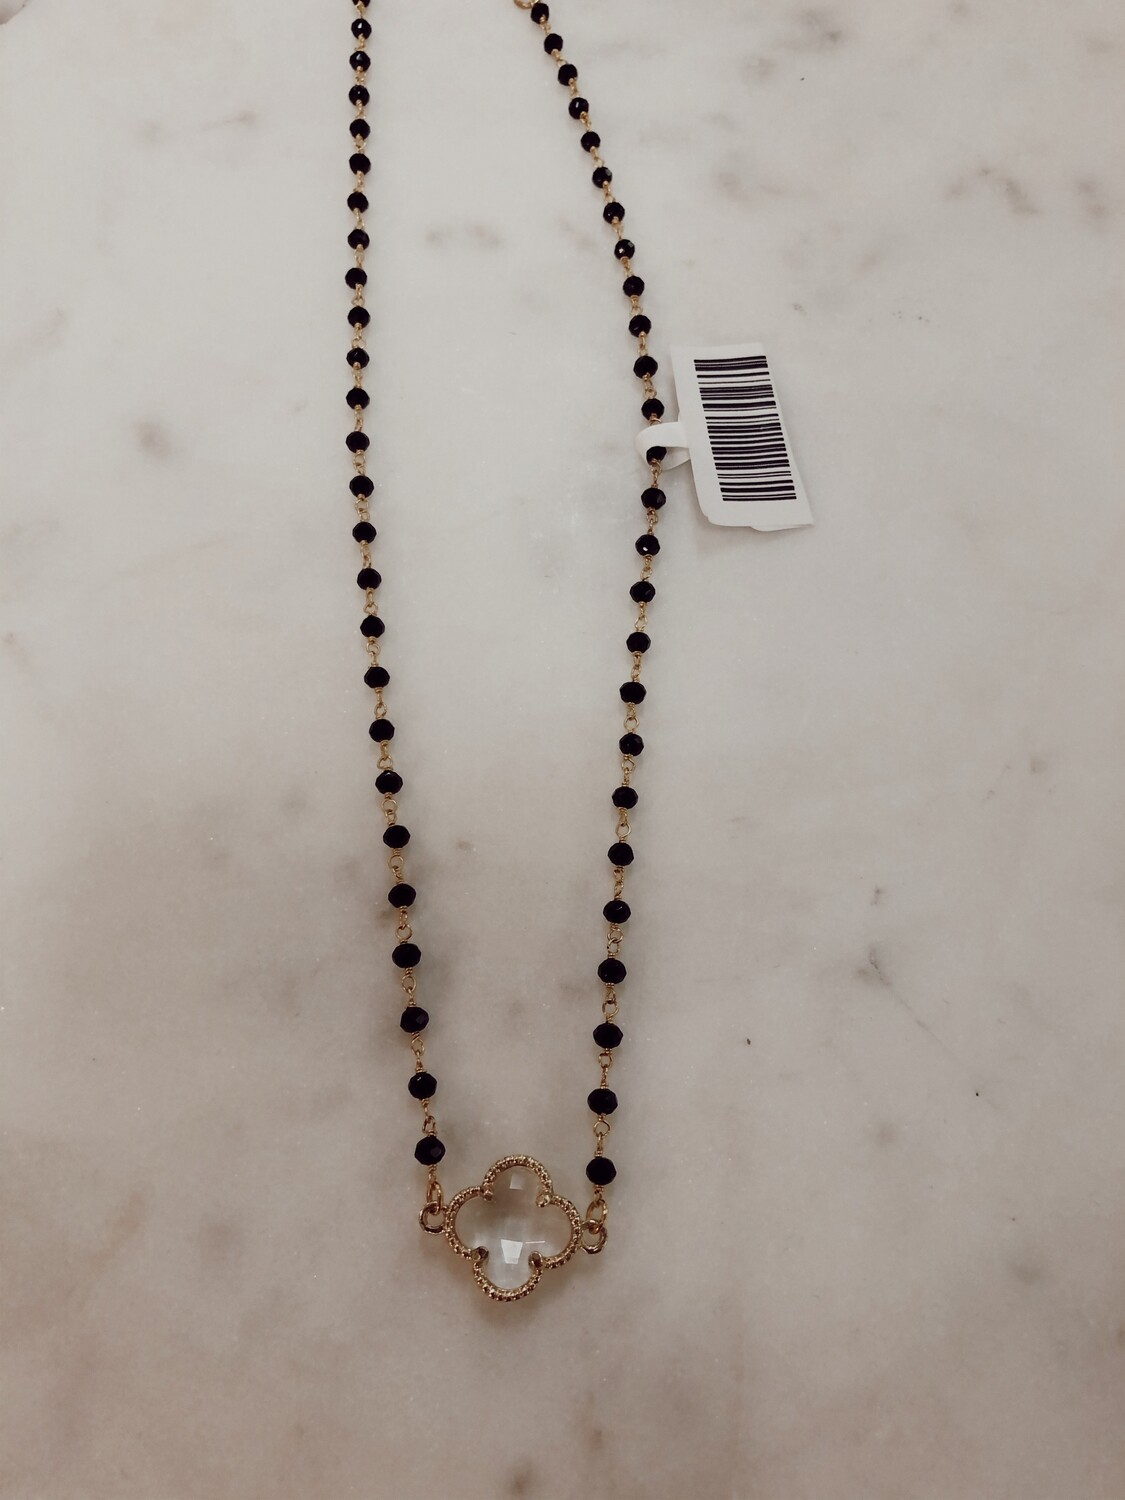 Necklace: The Kenny